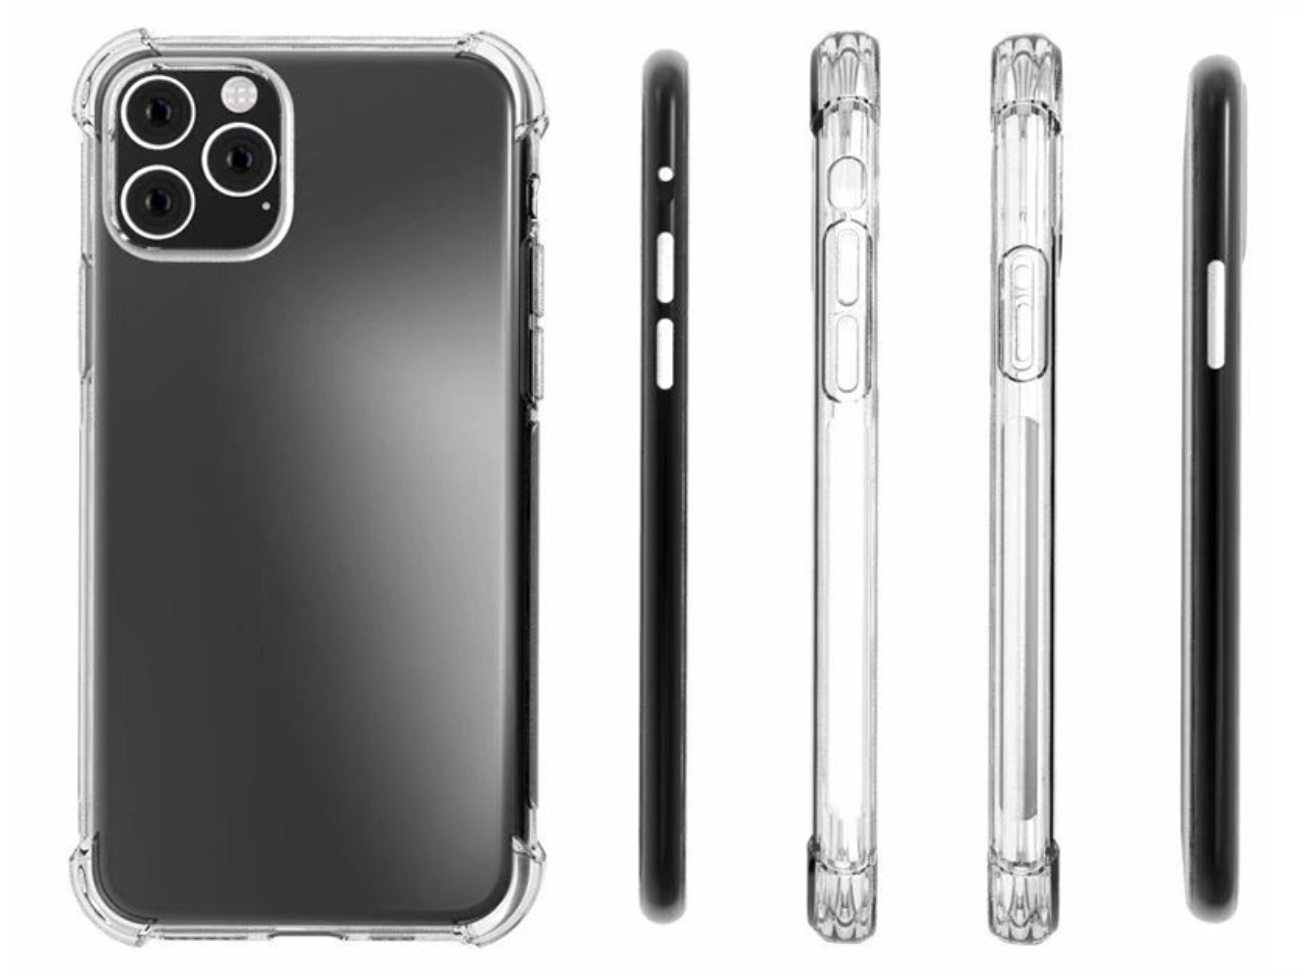 iphone-xi-case-matches-previously-leaked-design-191